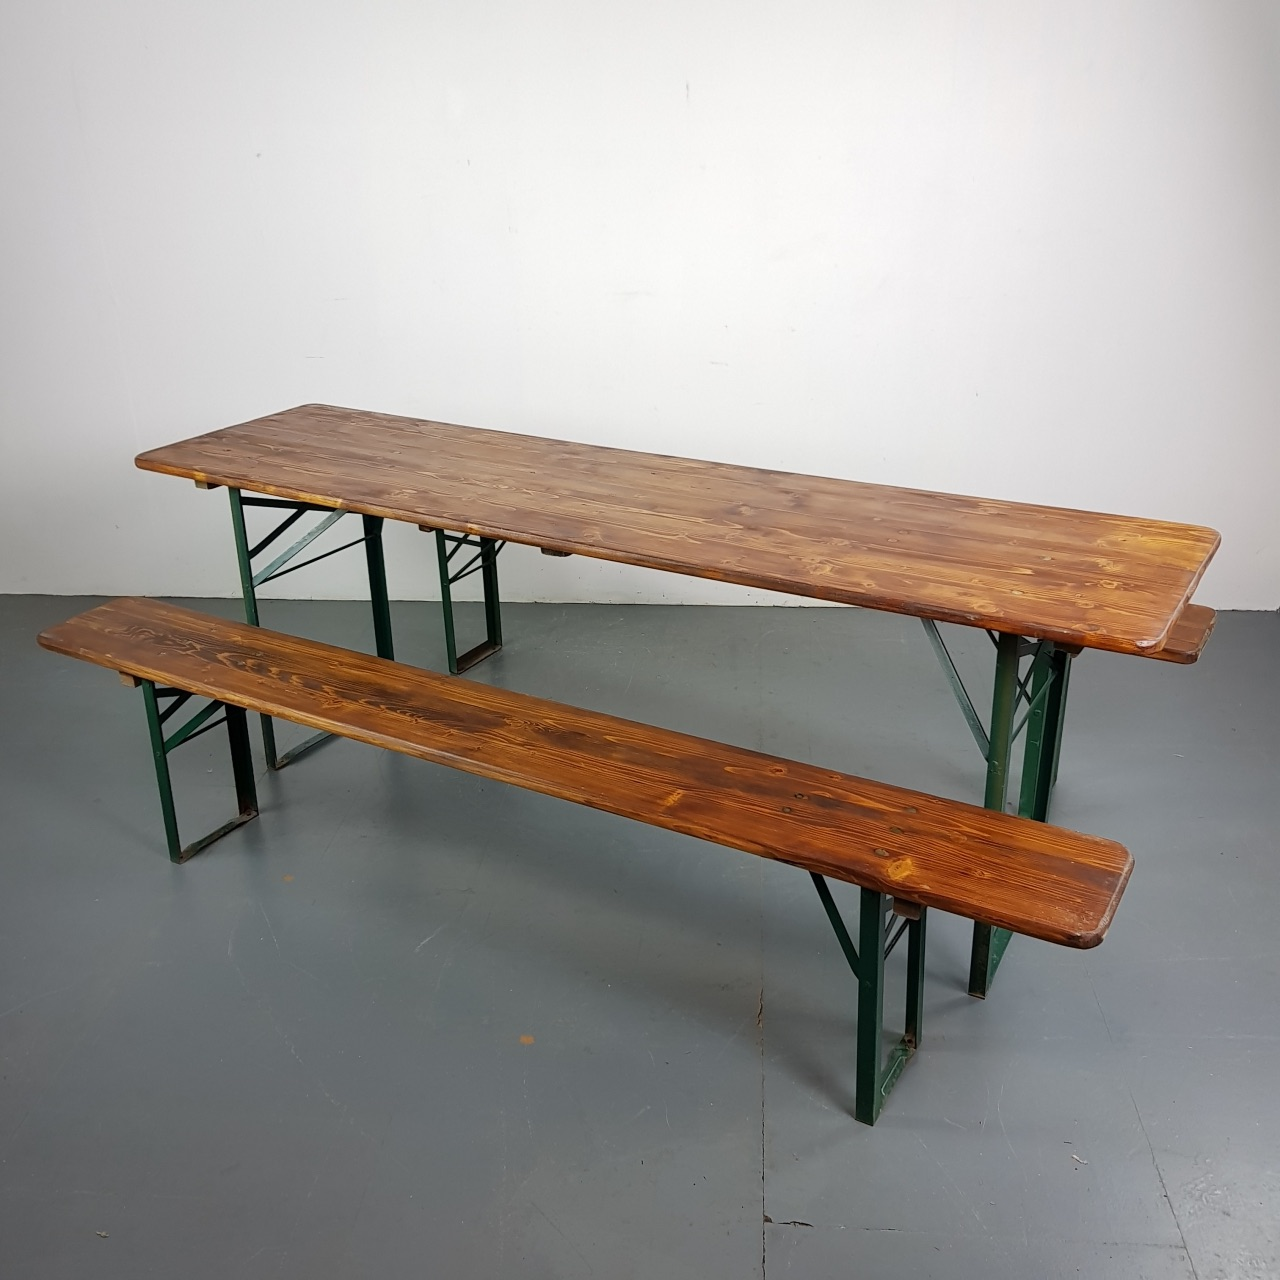 Cool Customised Extra Width Vintage German Beer Table And Benches Lovely And Company Evergreenethics Interior Chair Design Evergreenethicsorg